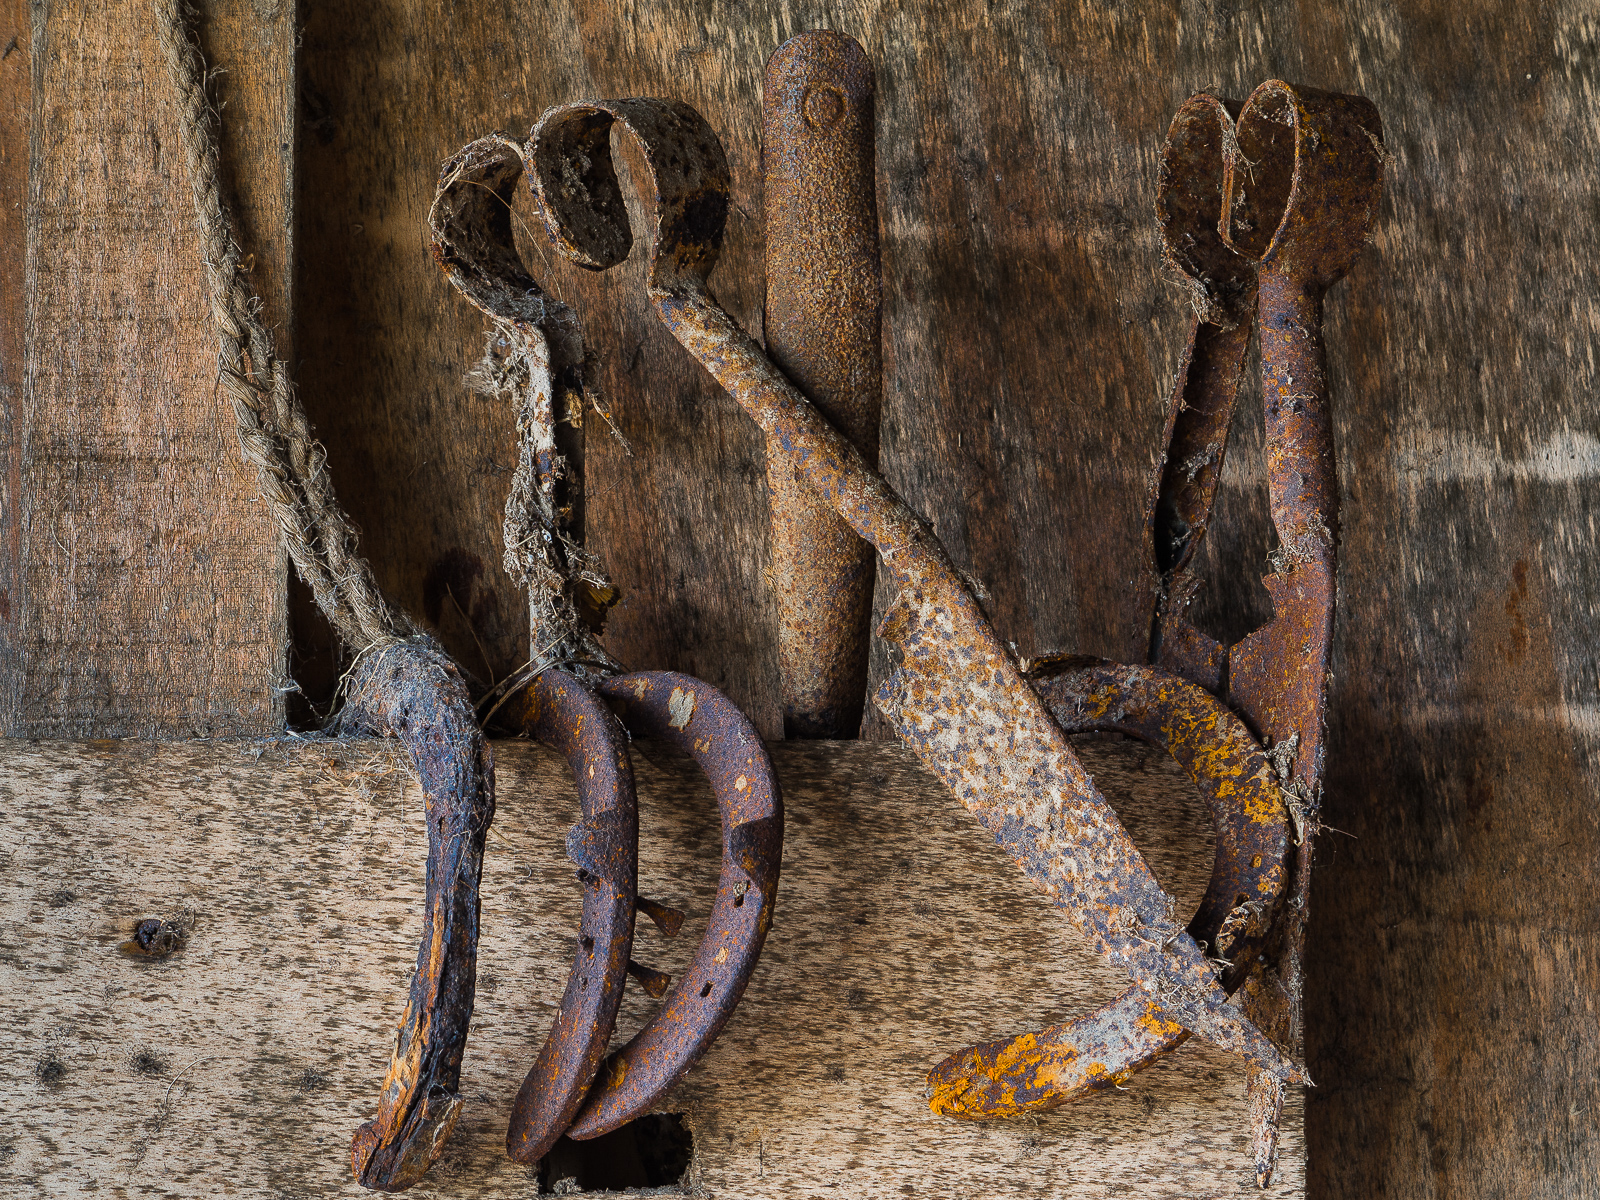 Tools in the old barn by Mary Chatburn